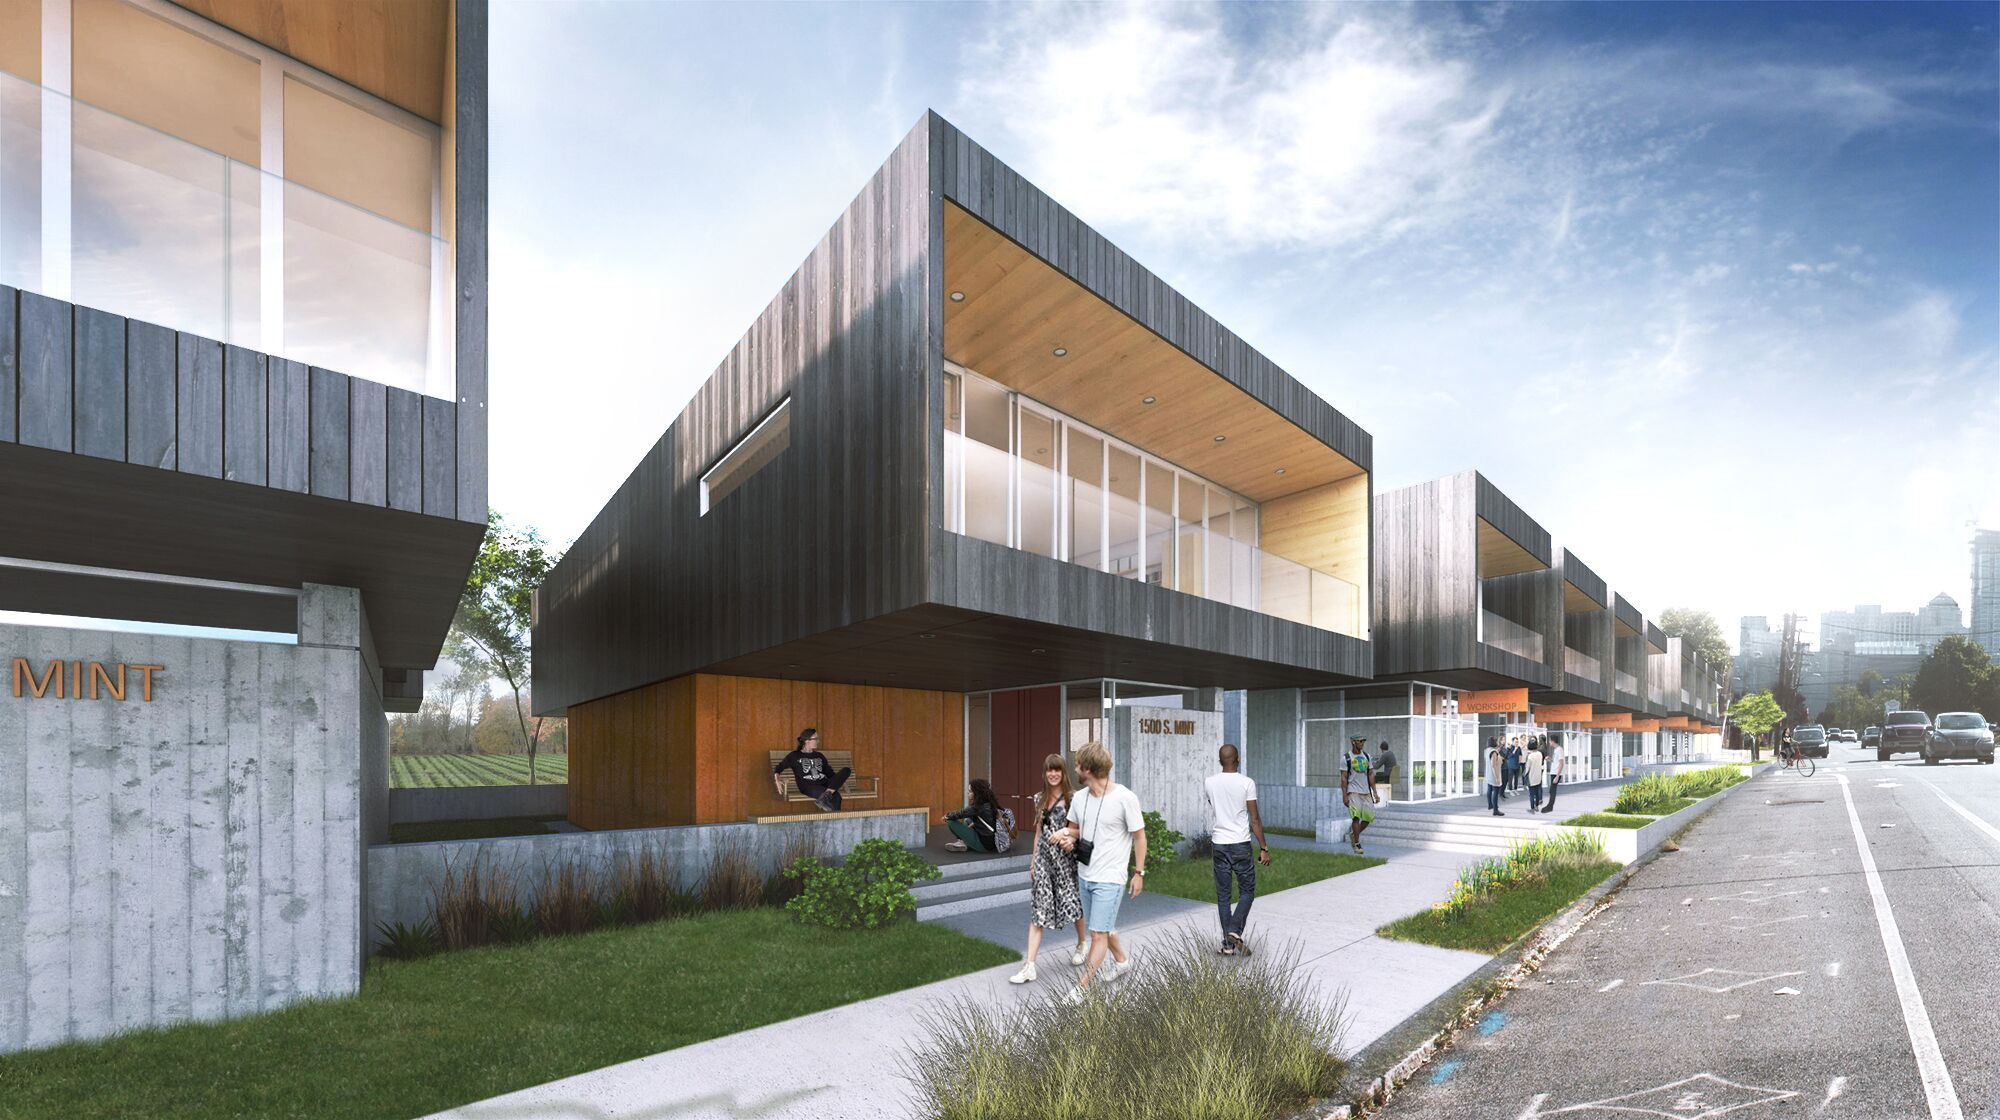 House design competition - Clark Nexsen Wins Activate Urban Housing Design Competition With A Food Centered Vision Courtesy